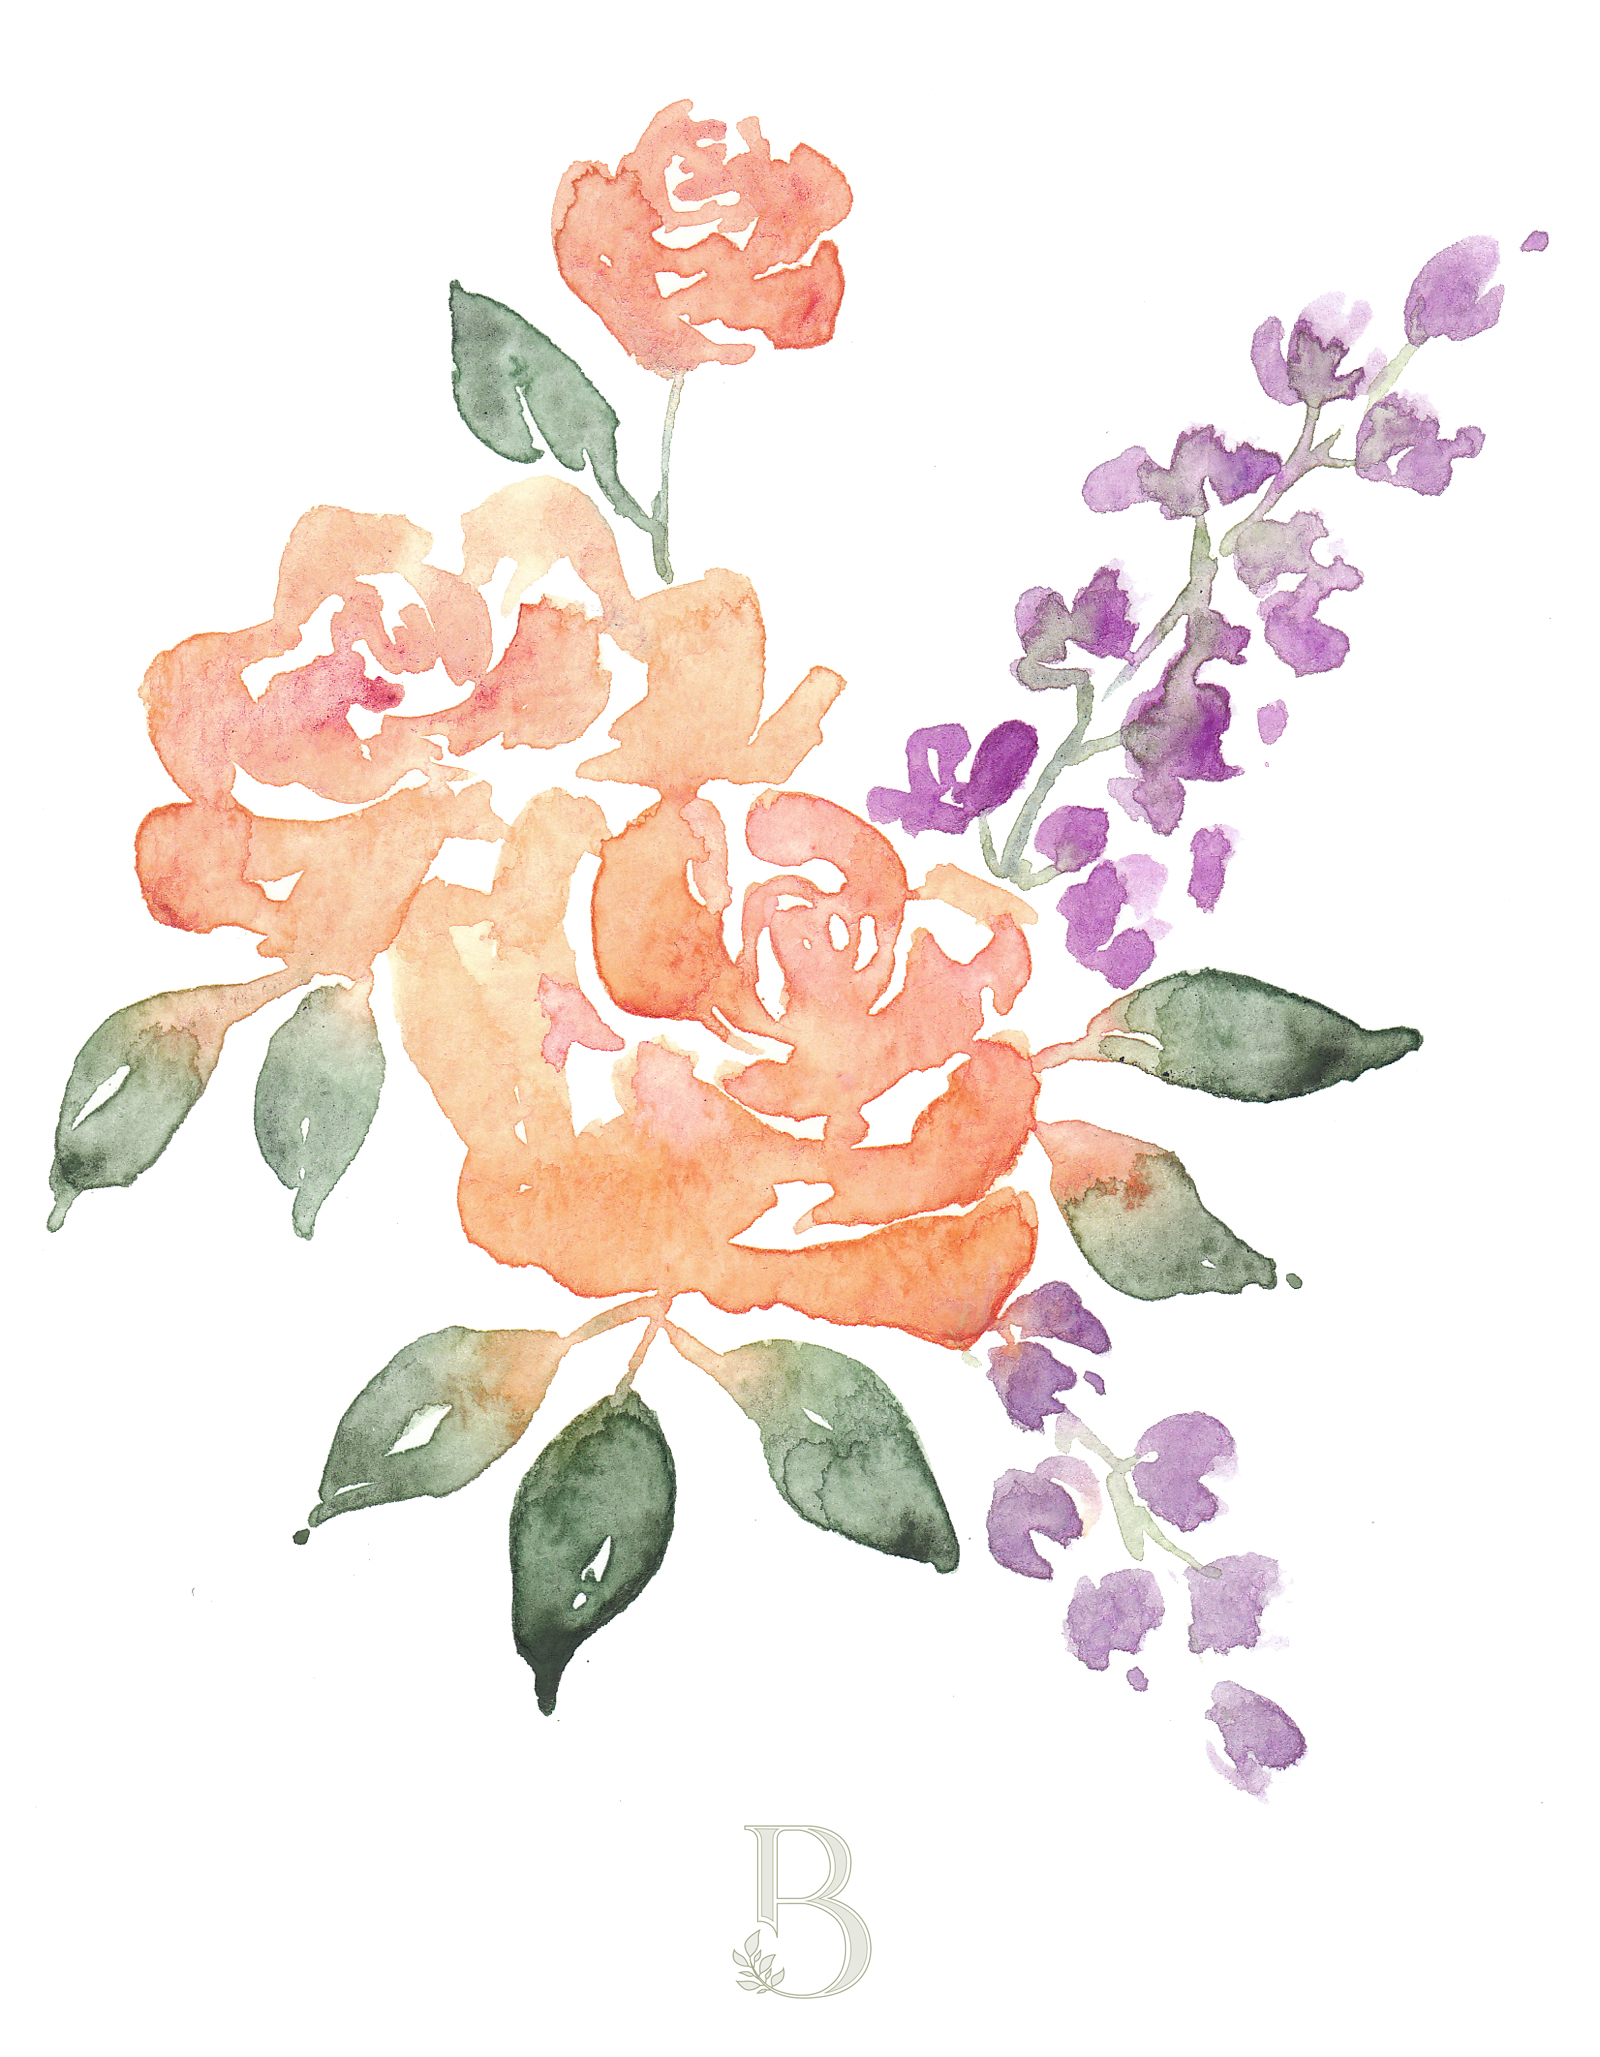 Loose watercolor flowers by Blushed Design.  It's not summer for me until there's a big bouquet of peonies on the table!  So I had to paint a few of them here for you :) #watercolorflowers #watercolor #loosewatercolors